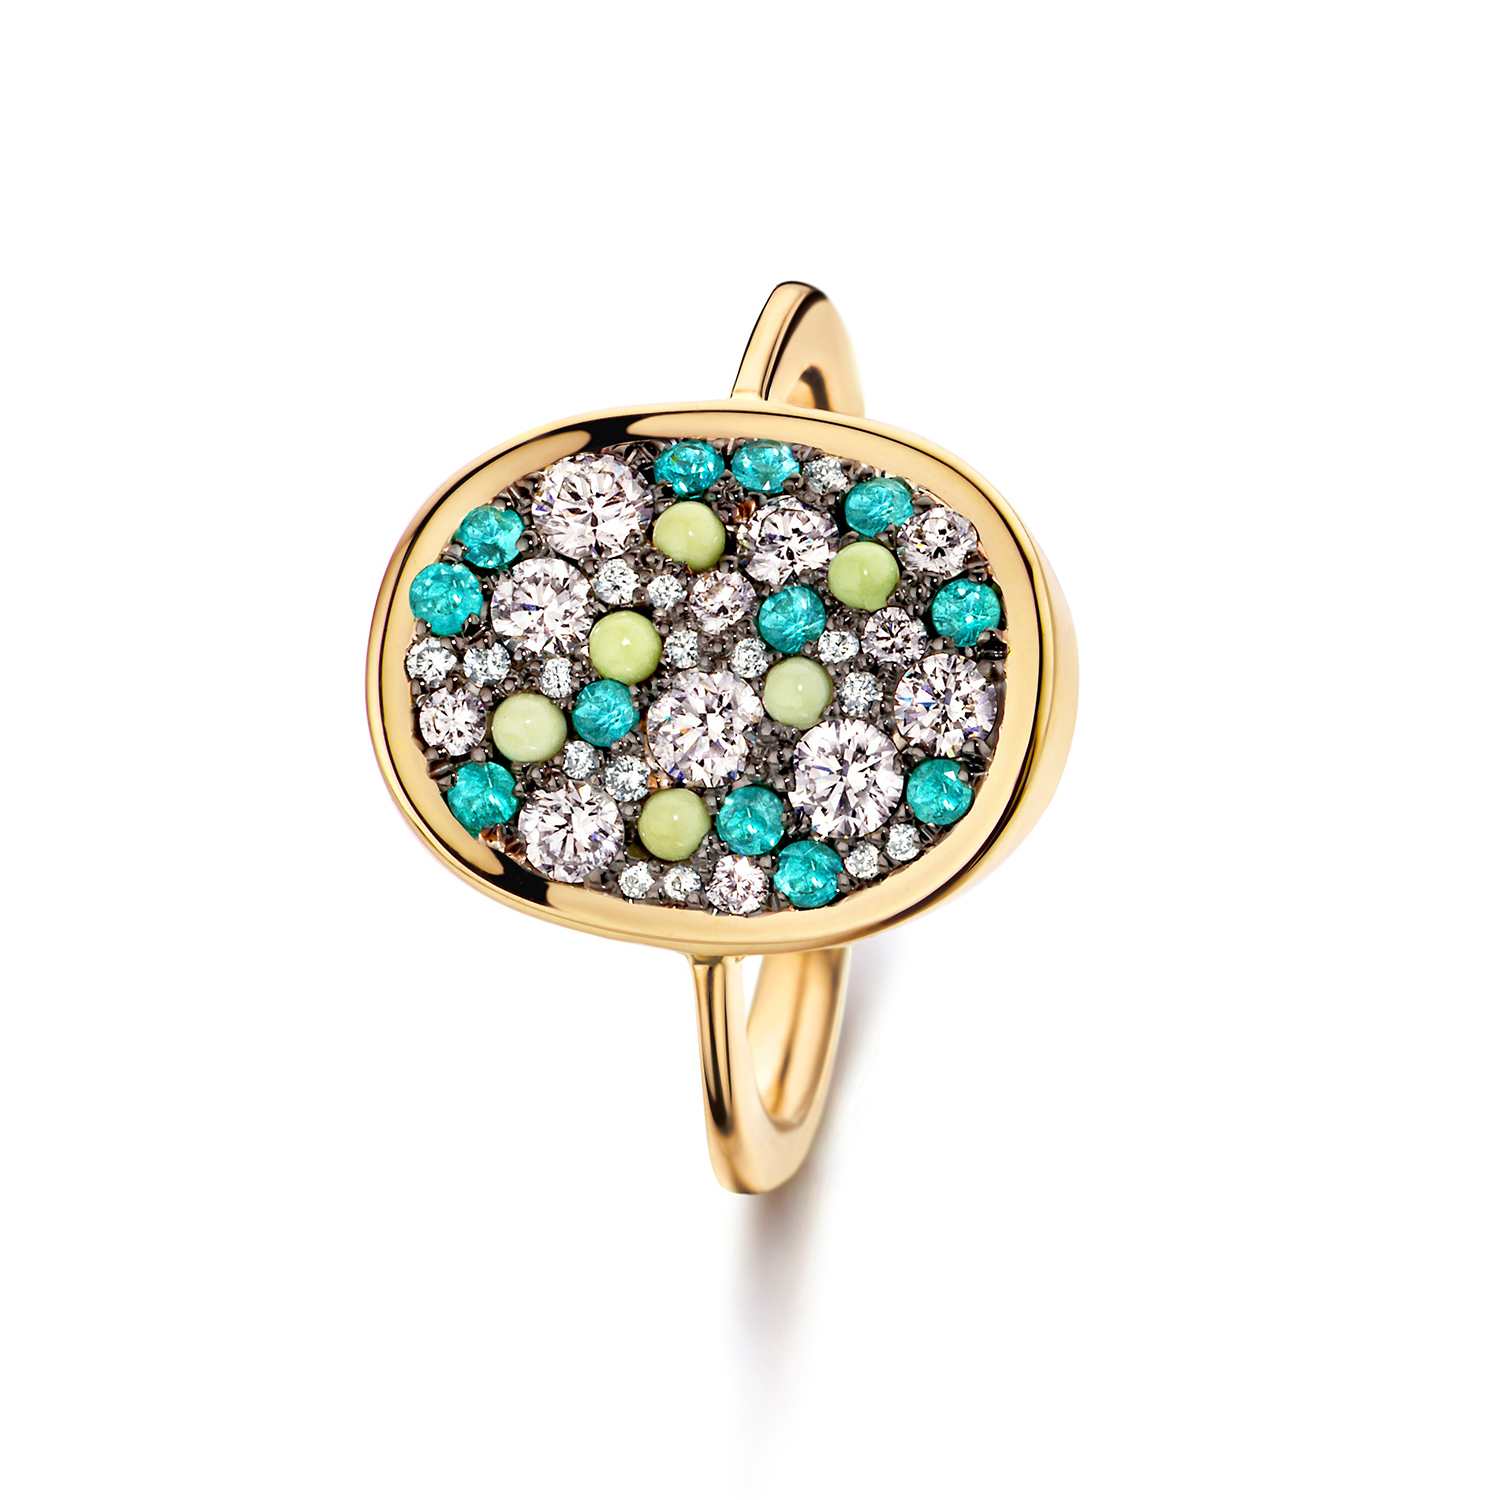 unique ring with paraiba tourmalines, diamonds and chrysoprase